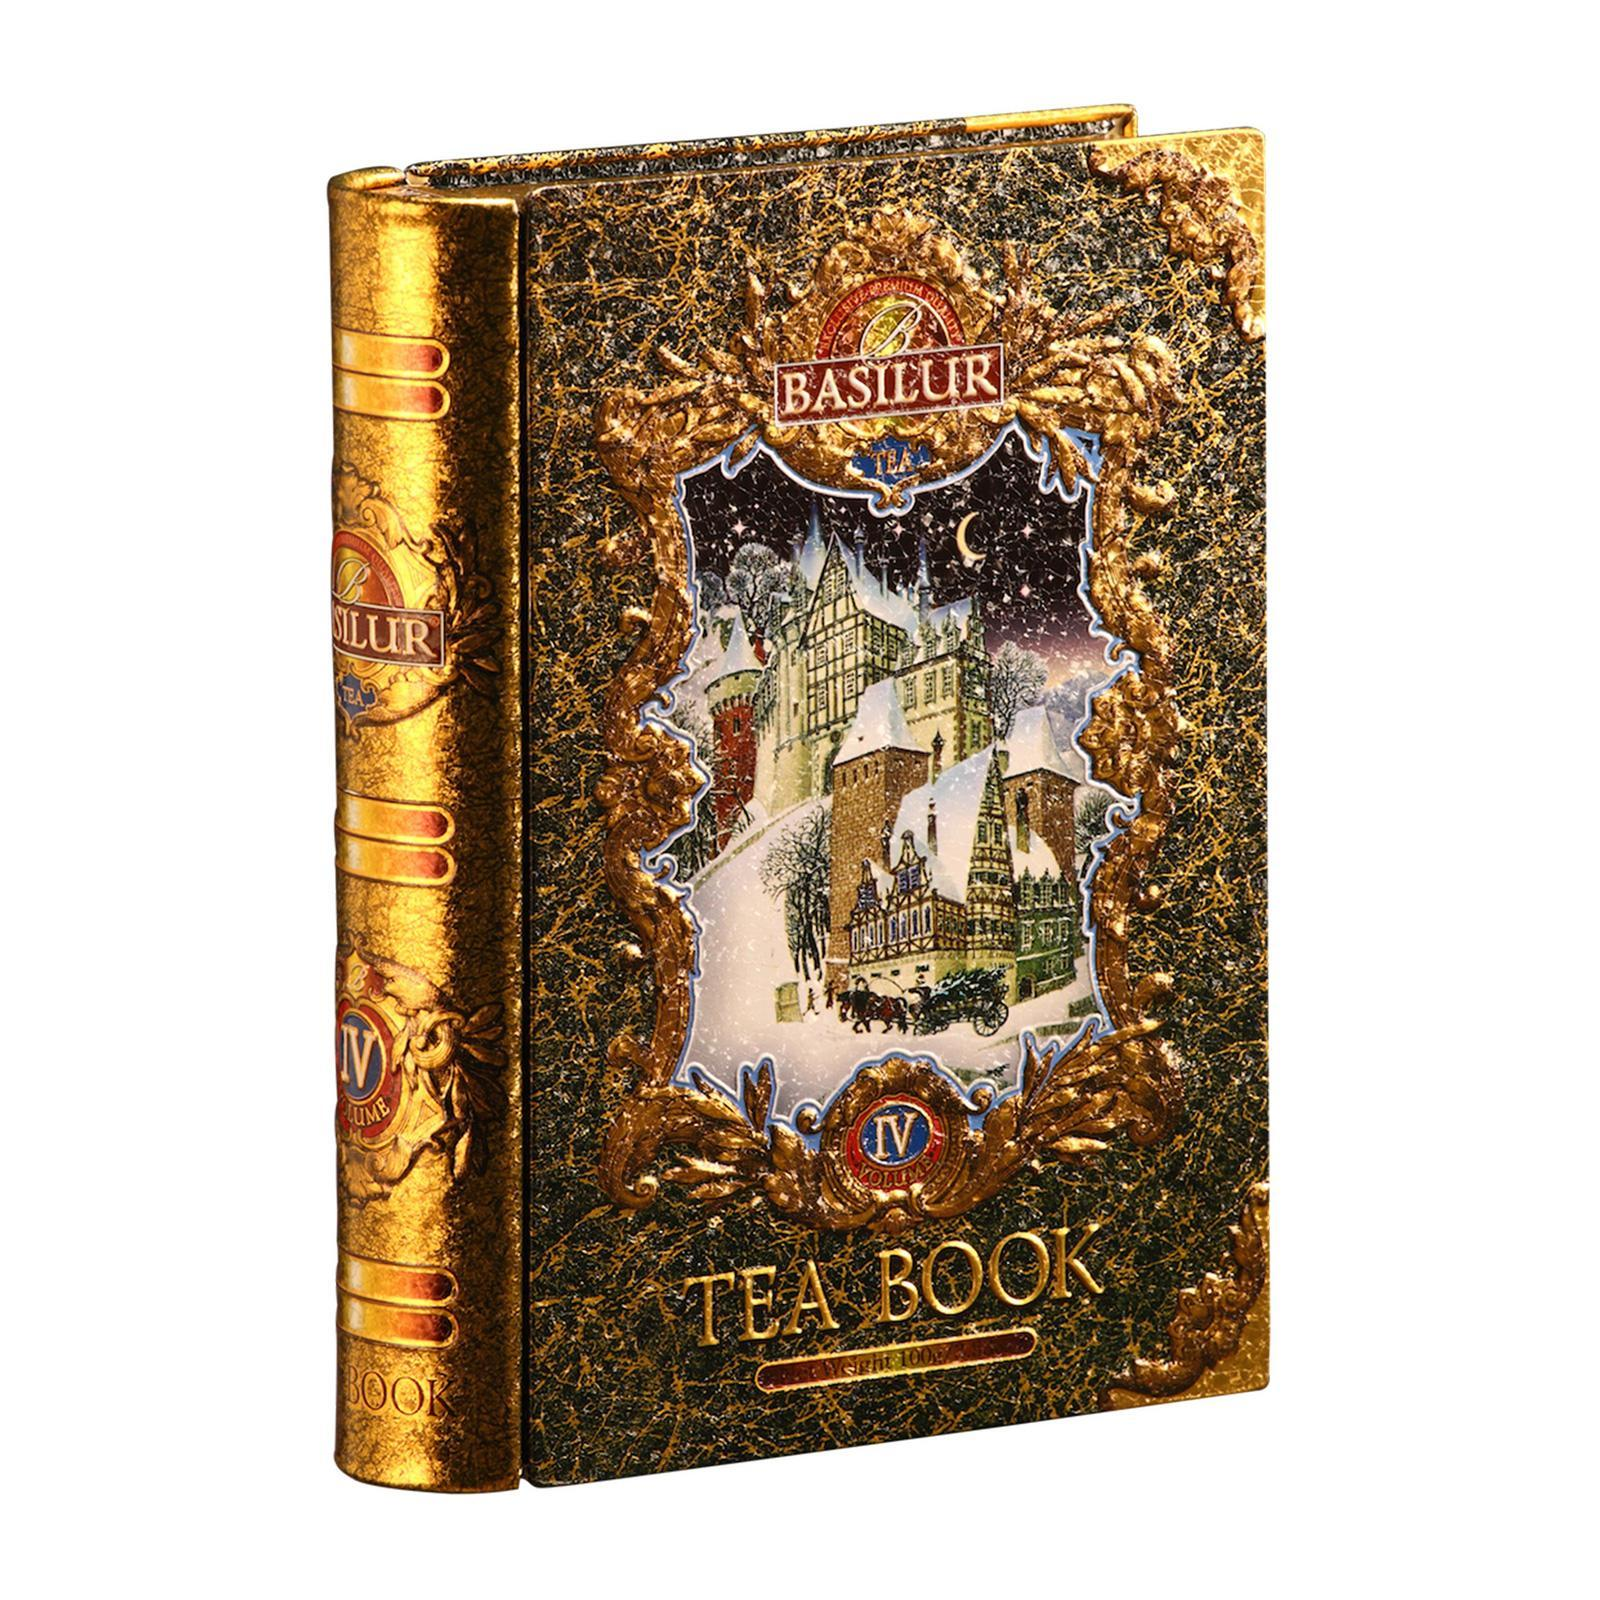 Basilur Tea Book (FBOP Extra Special Tippy Black Tea)